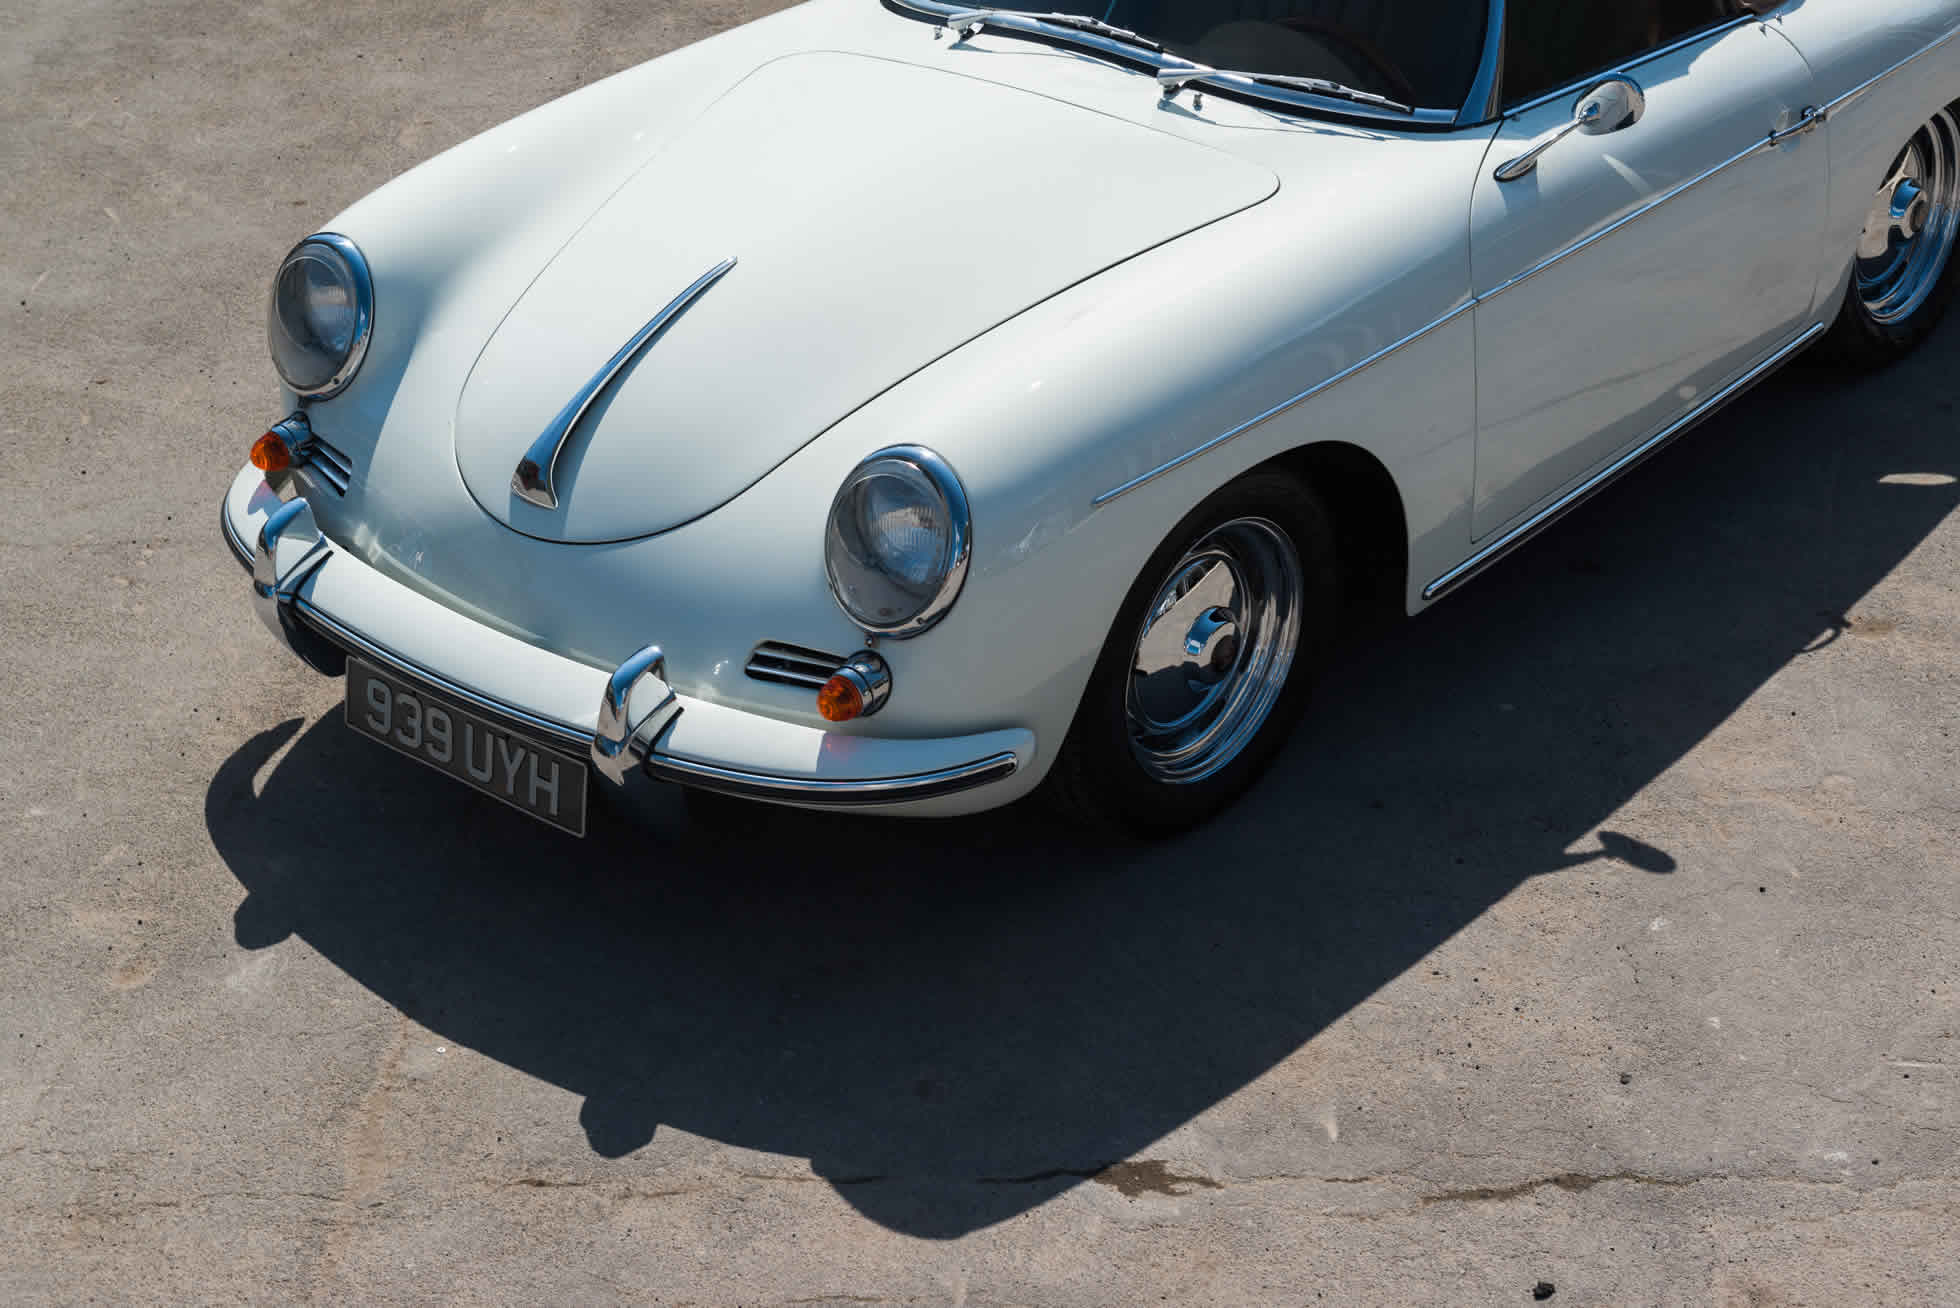 For Sale 1961 Porsche 356B S90 Roadster front view